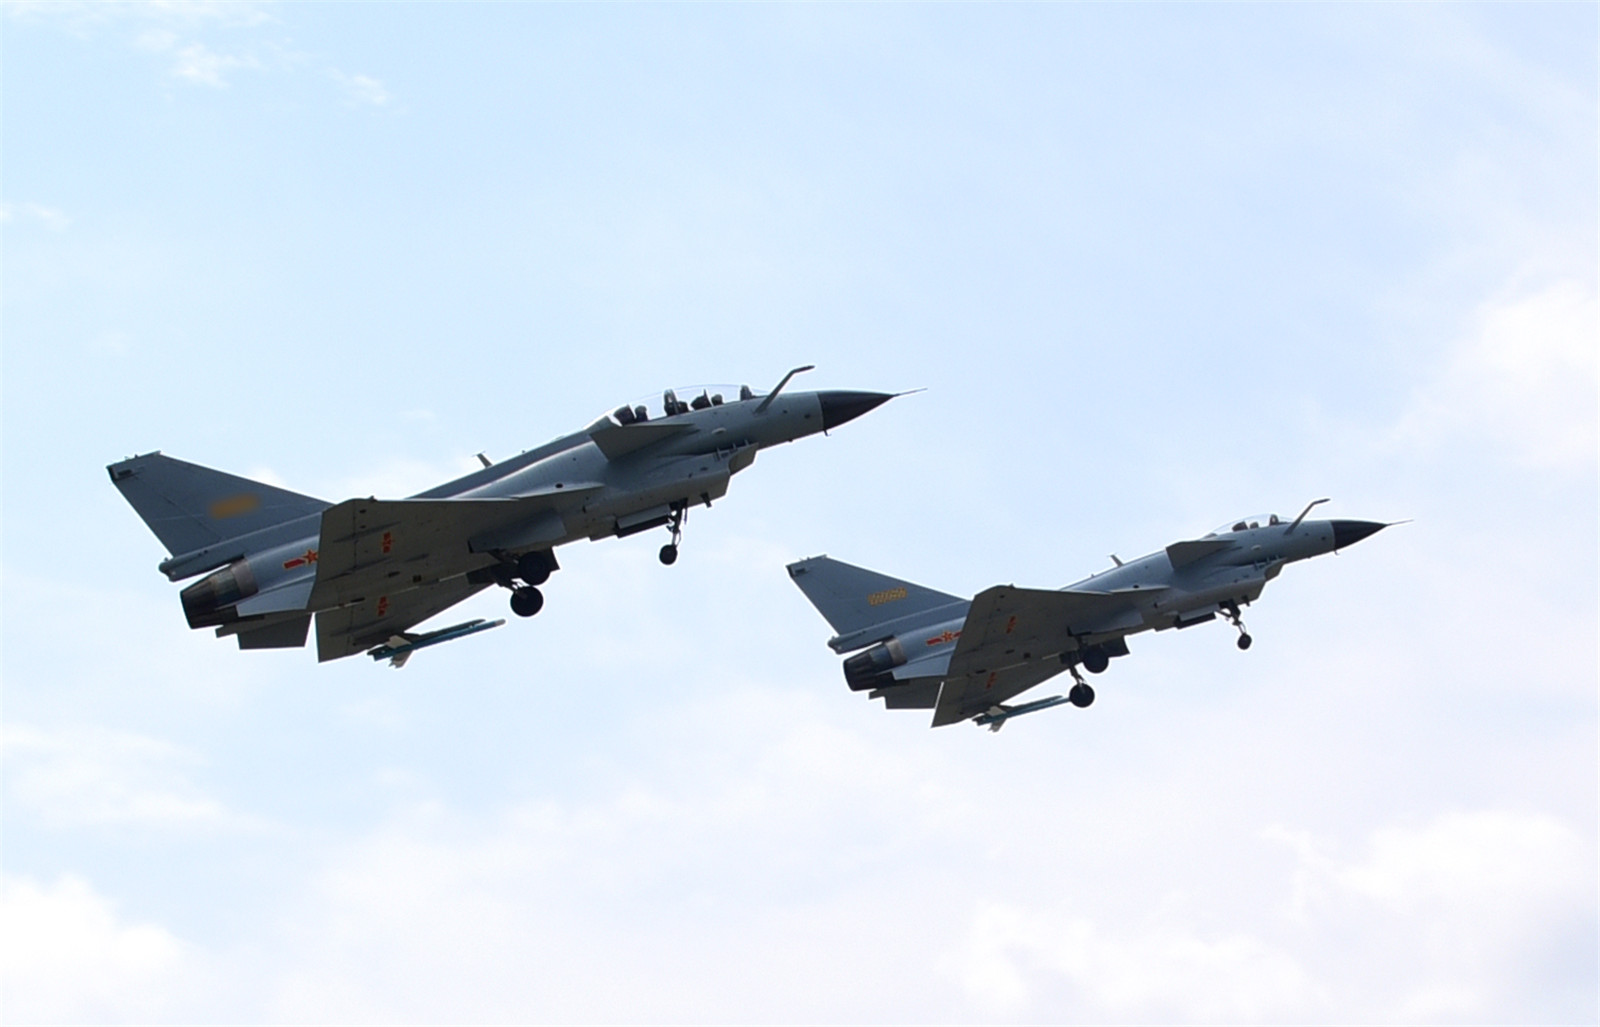 J-10 fighter jets ready for missions